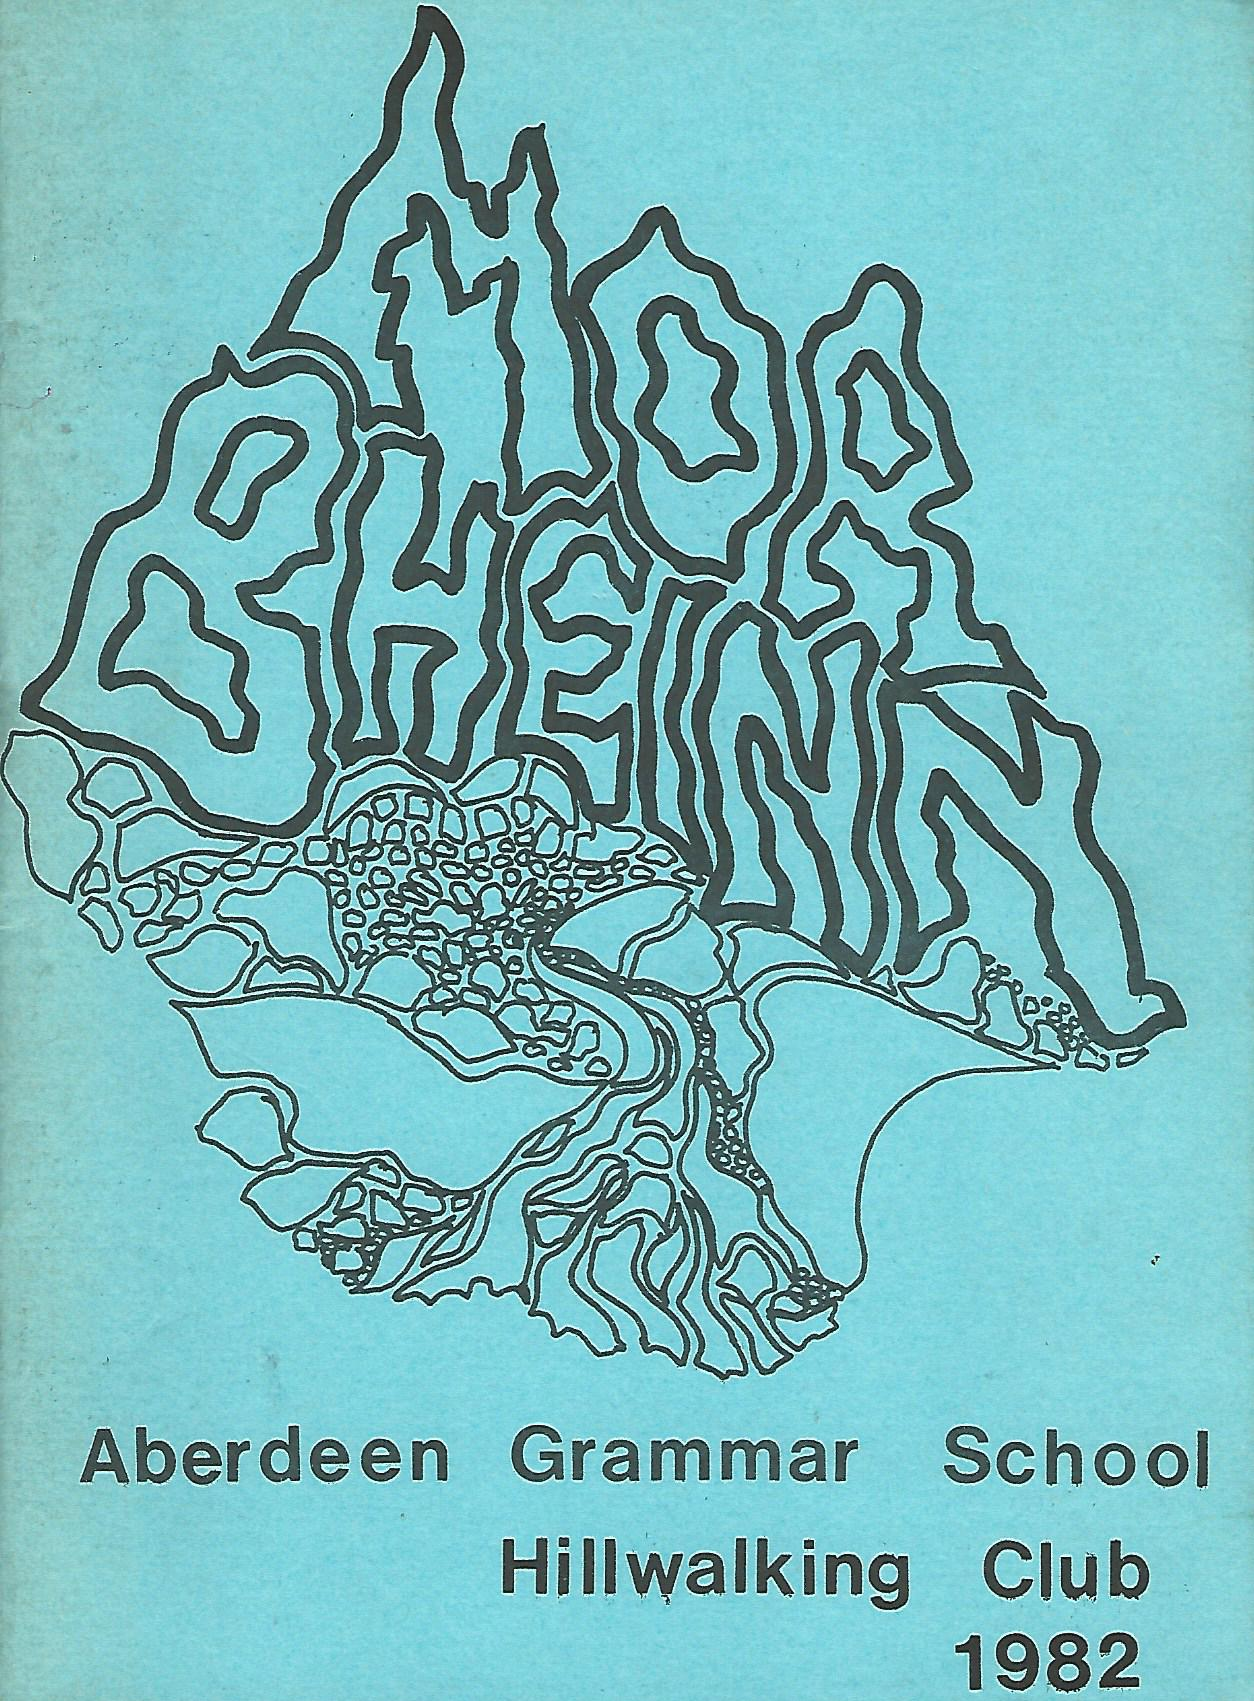 Image for Mor Bheinn, Aberdeen Grammar School Hillwalking Club 1982.